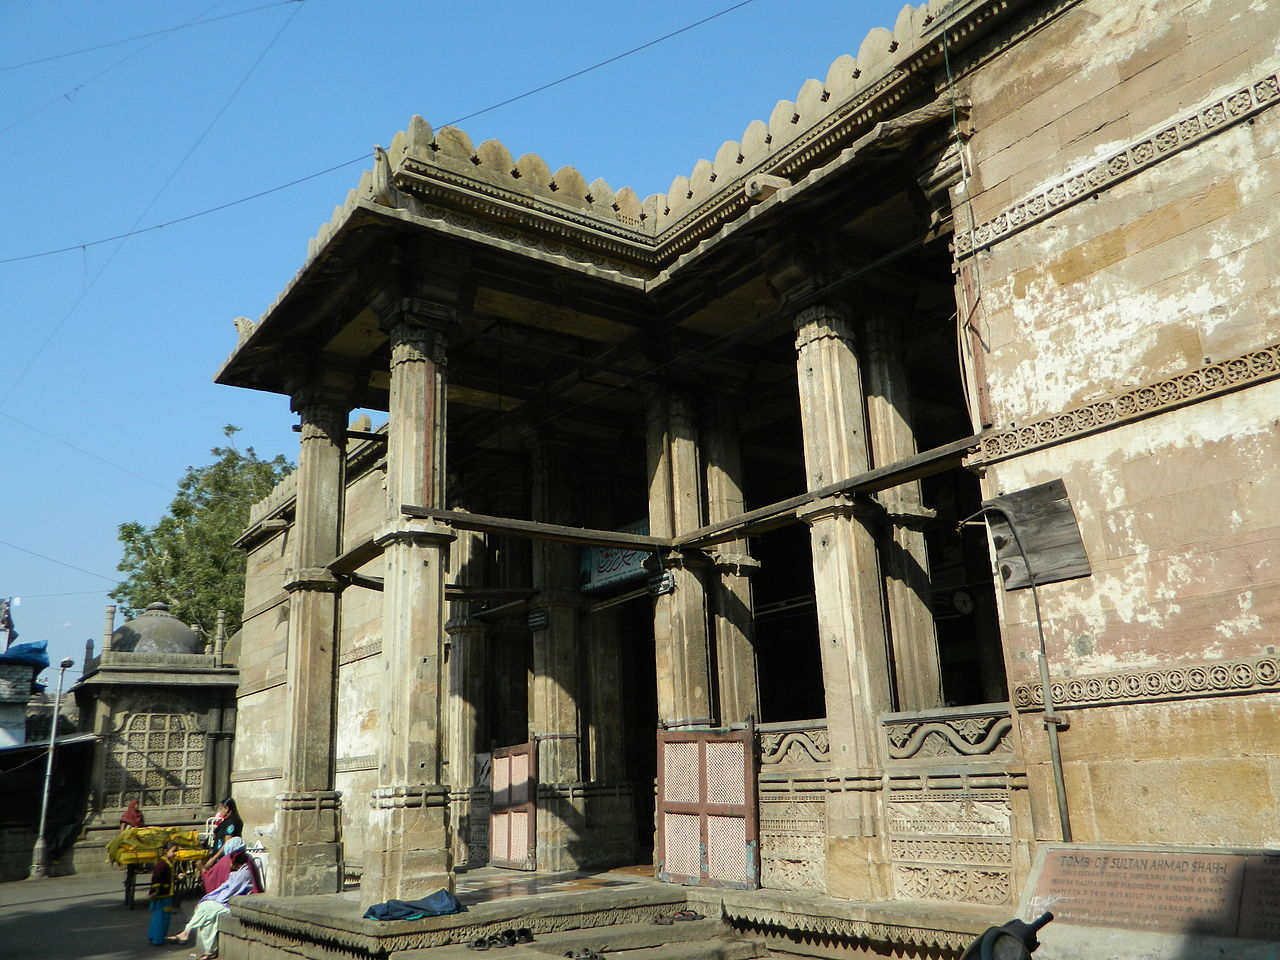 Structure & Architecture of The Ahmad Shah Tomb, Ahmedabad